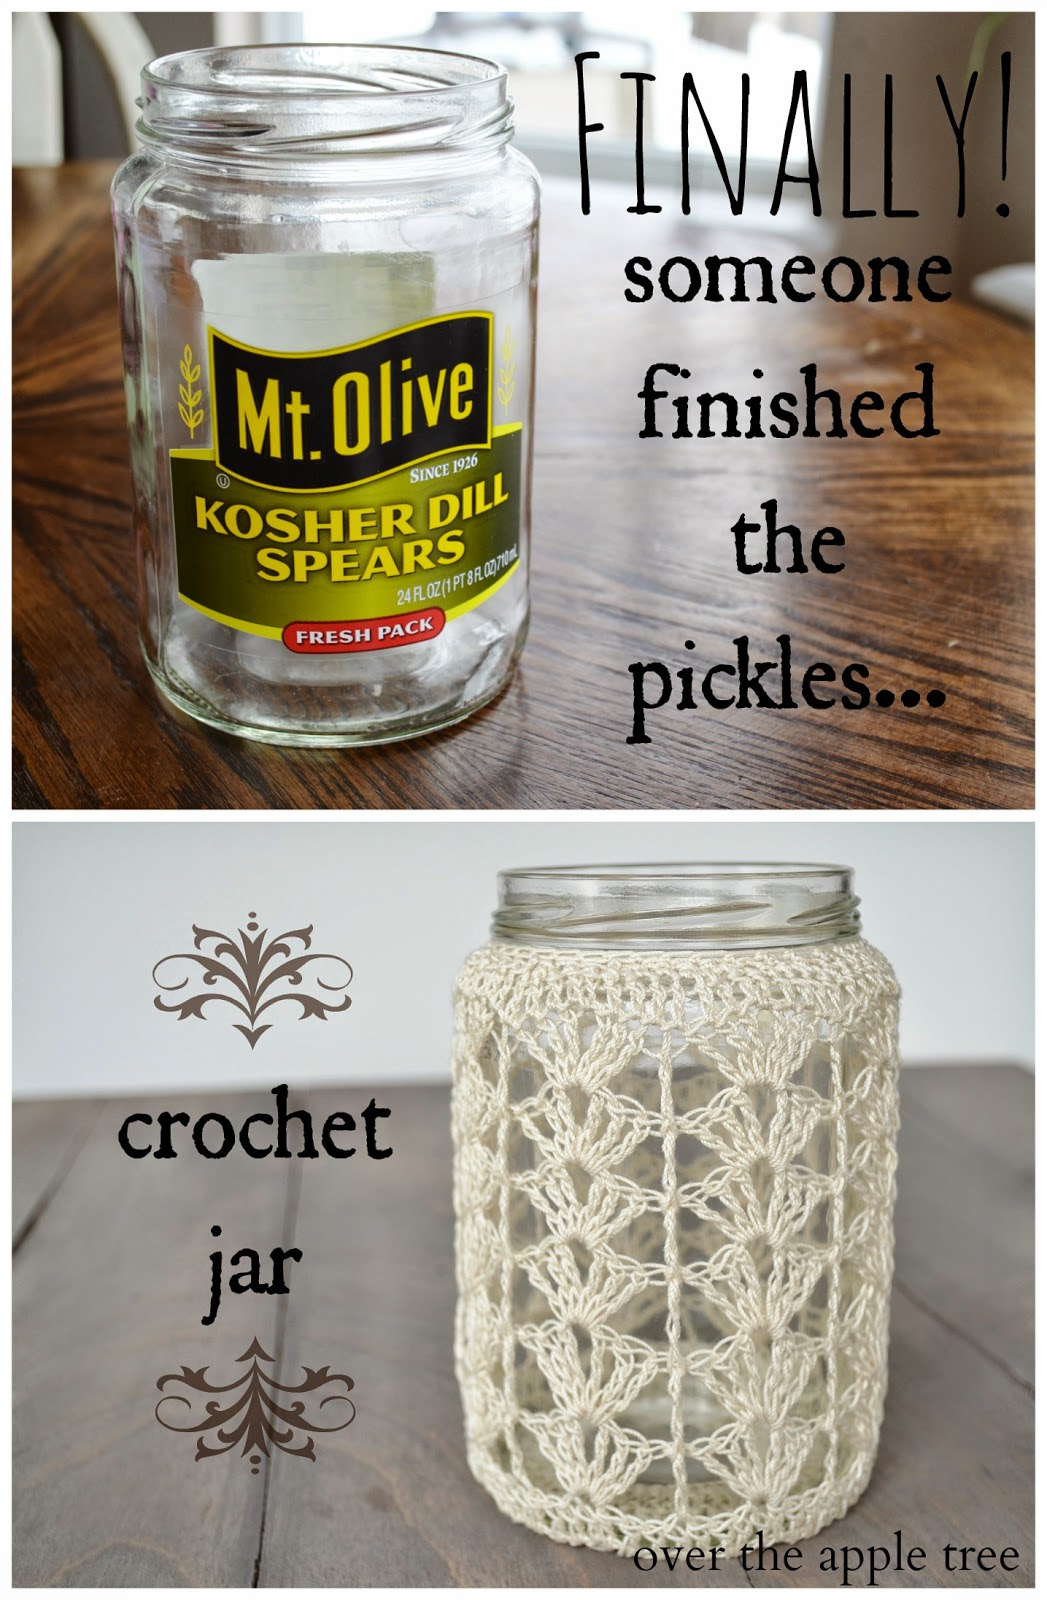 Crochet Jar, Over The Apple Tree